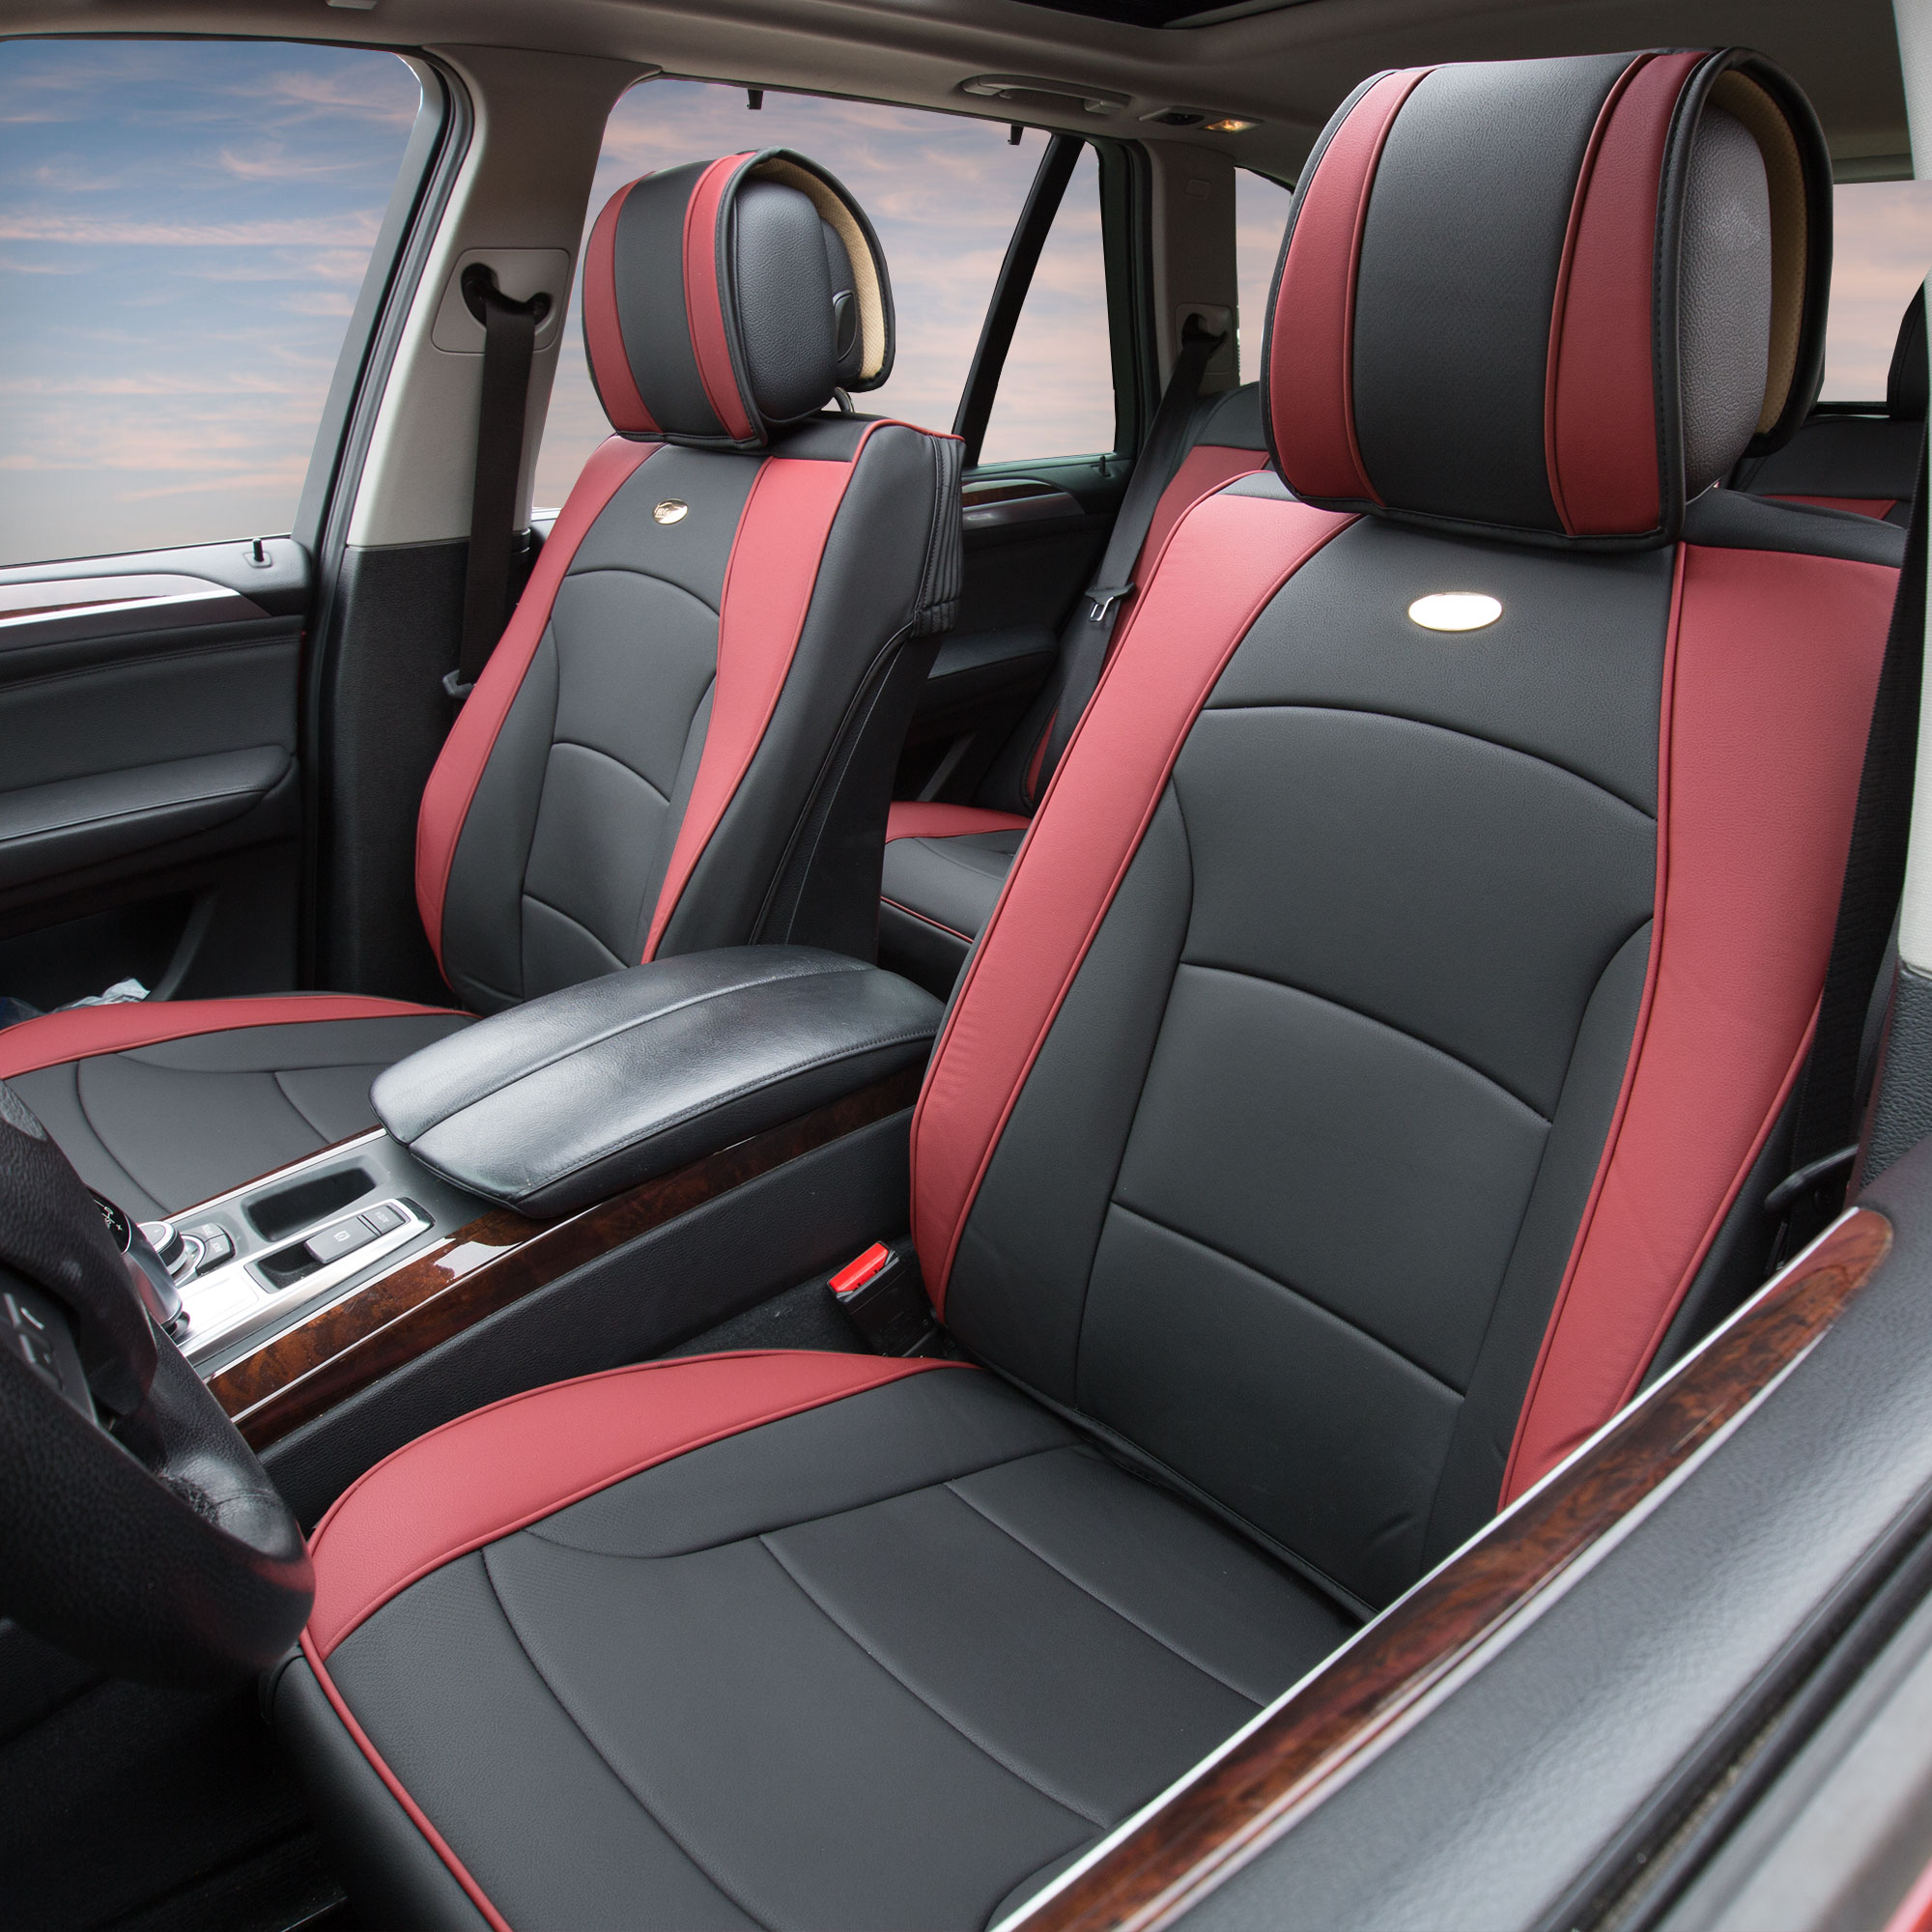 Luxury-Leather-Seat-Cushion-Covers-Front-Bucket-Pair-11-Color-Options thumbnail 30